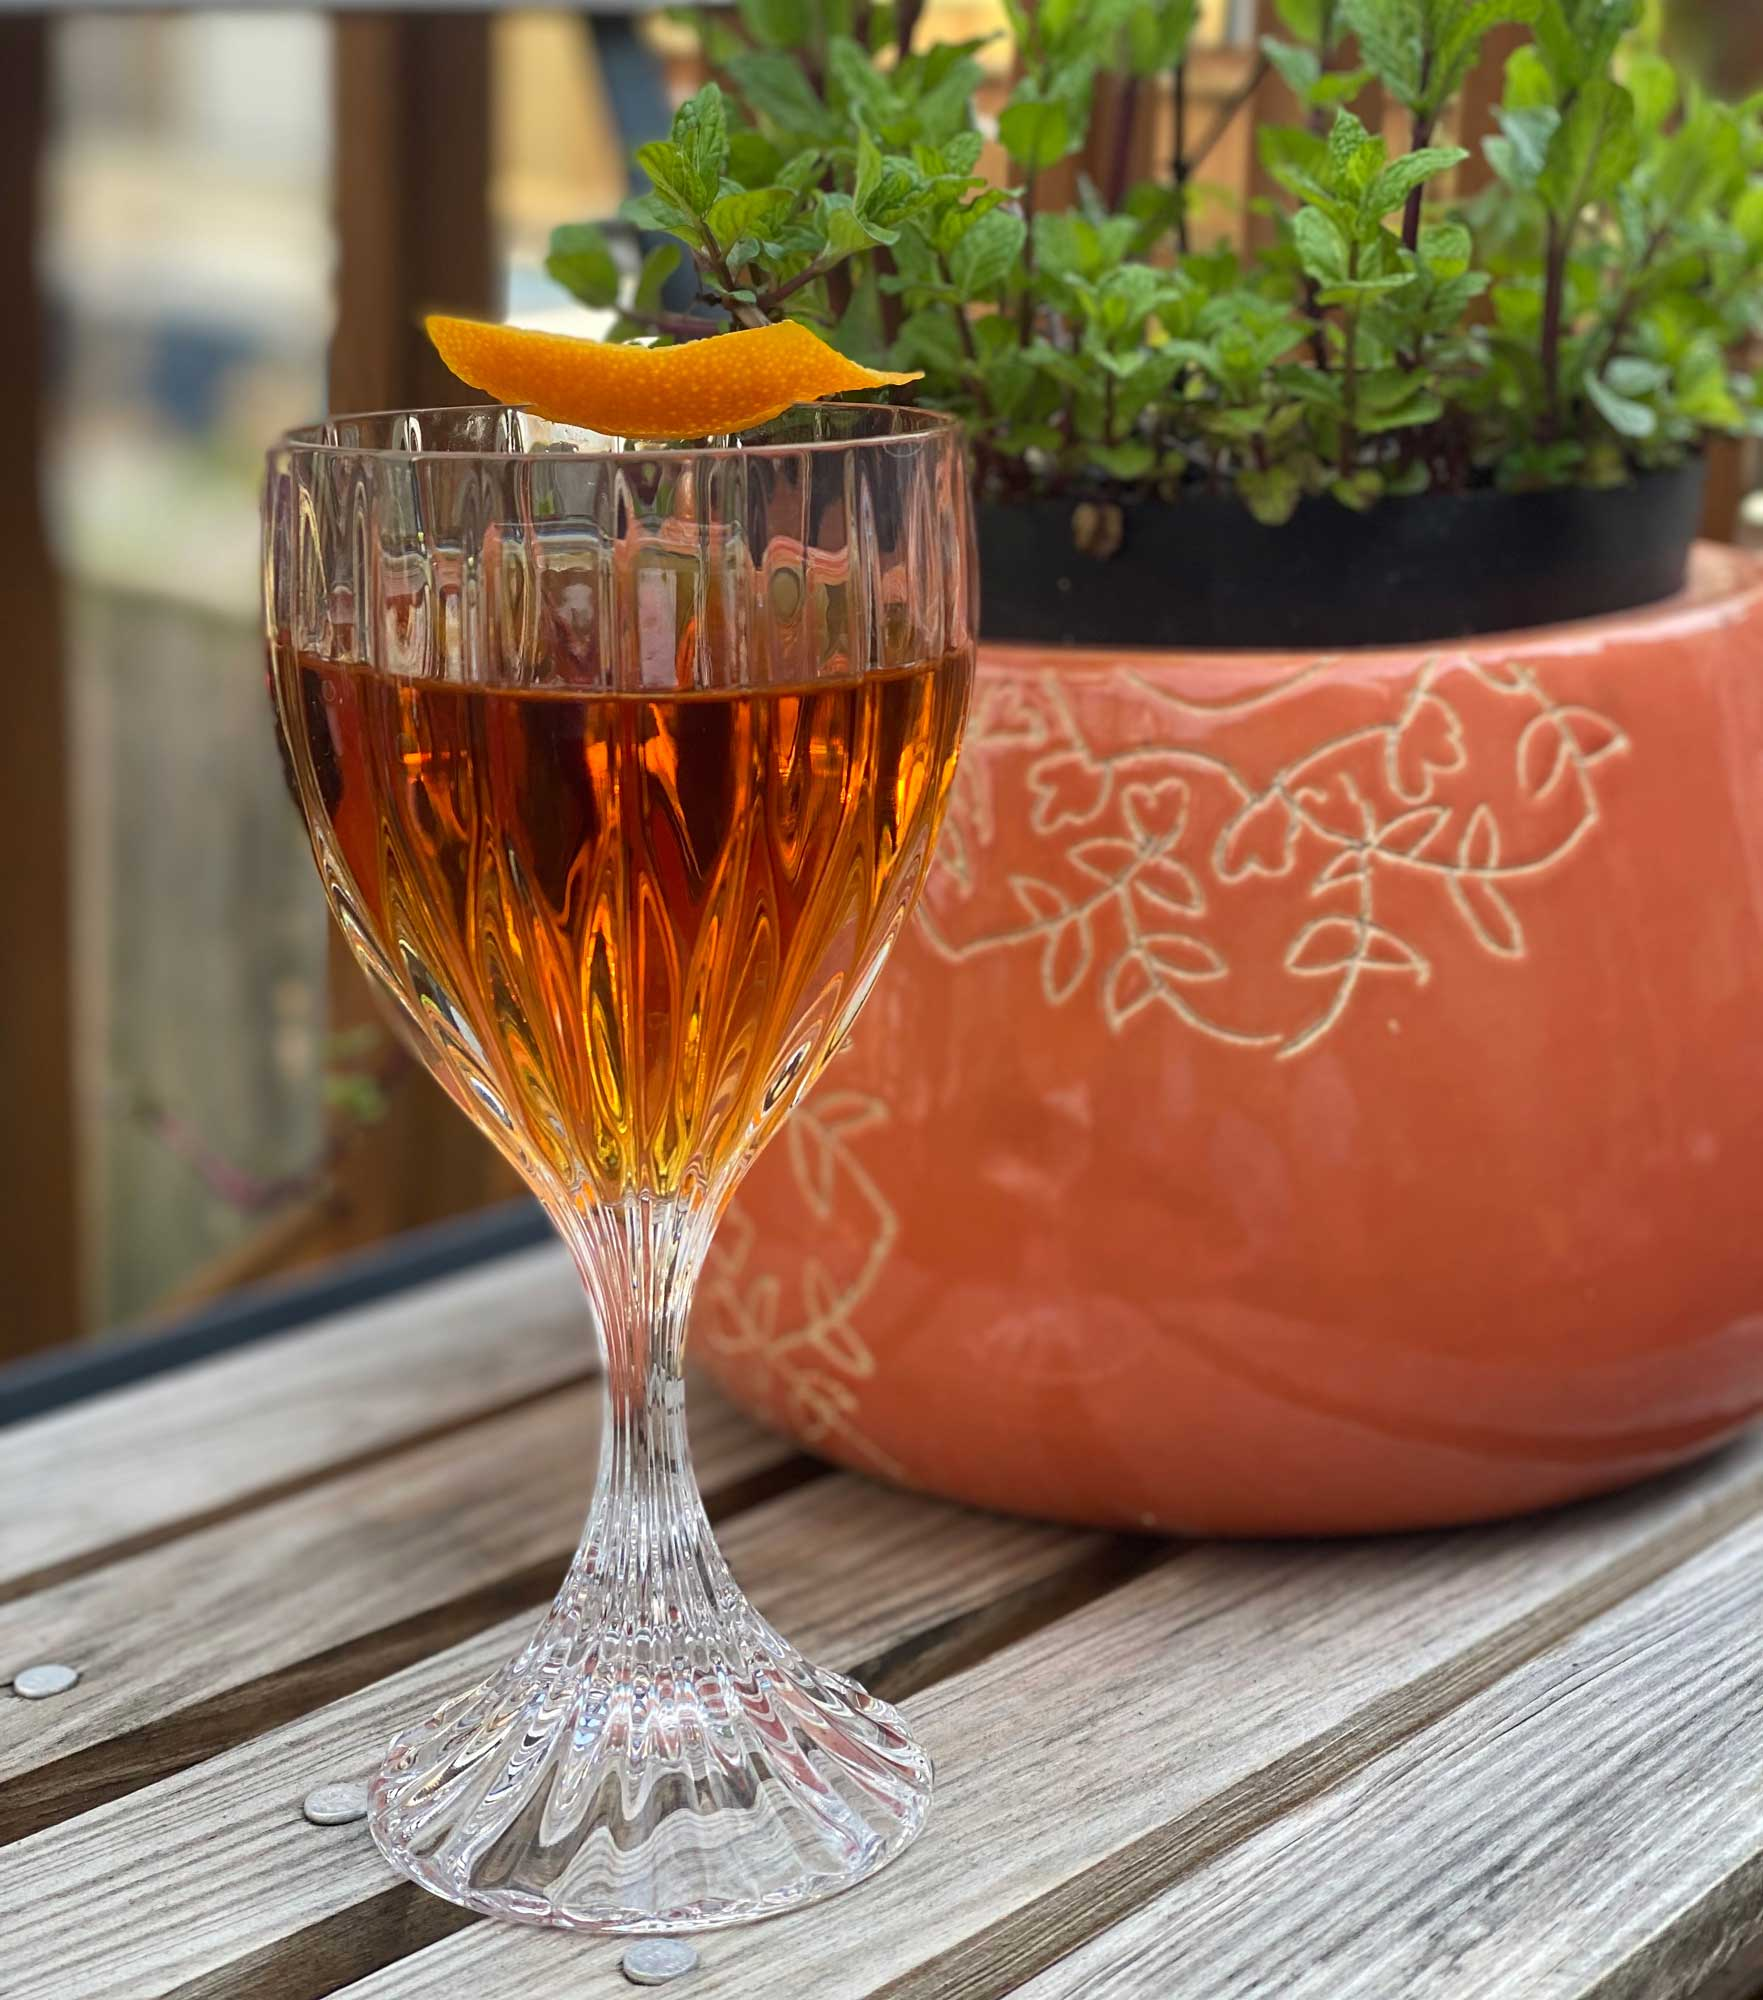 An example of the Adonis, the mixed drink (cocktail) featuring fino sherry, Dolin Rouge Vermouth de Chambéry, and orange bitters; photo by Faith Comas